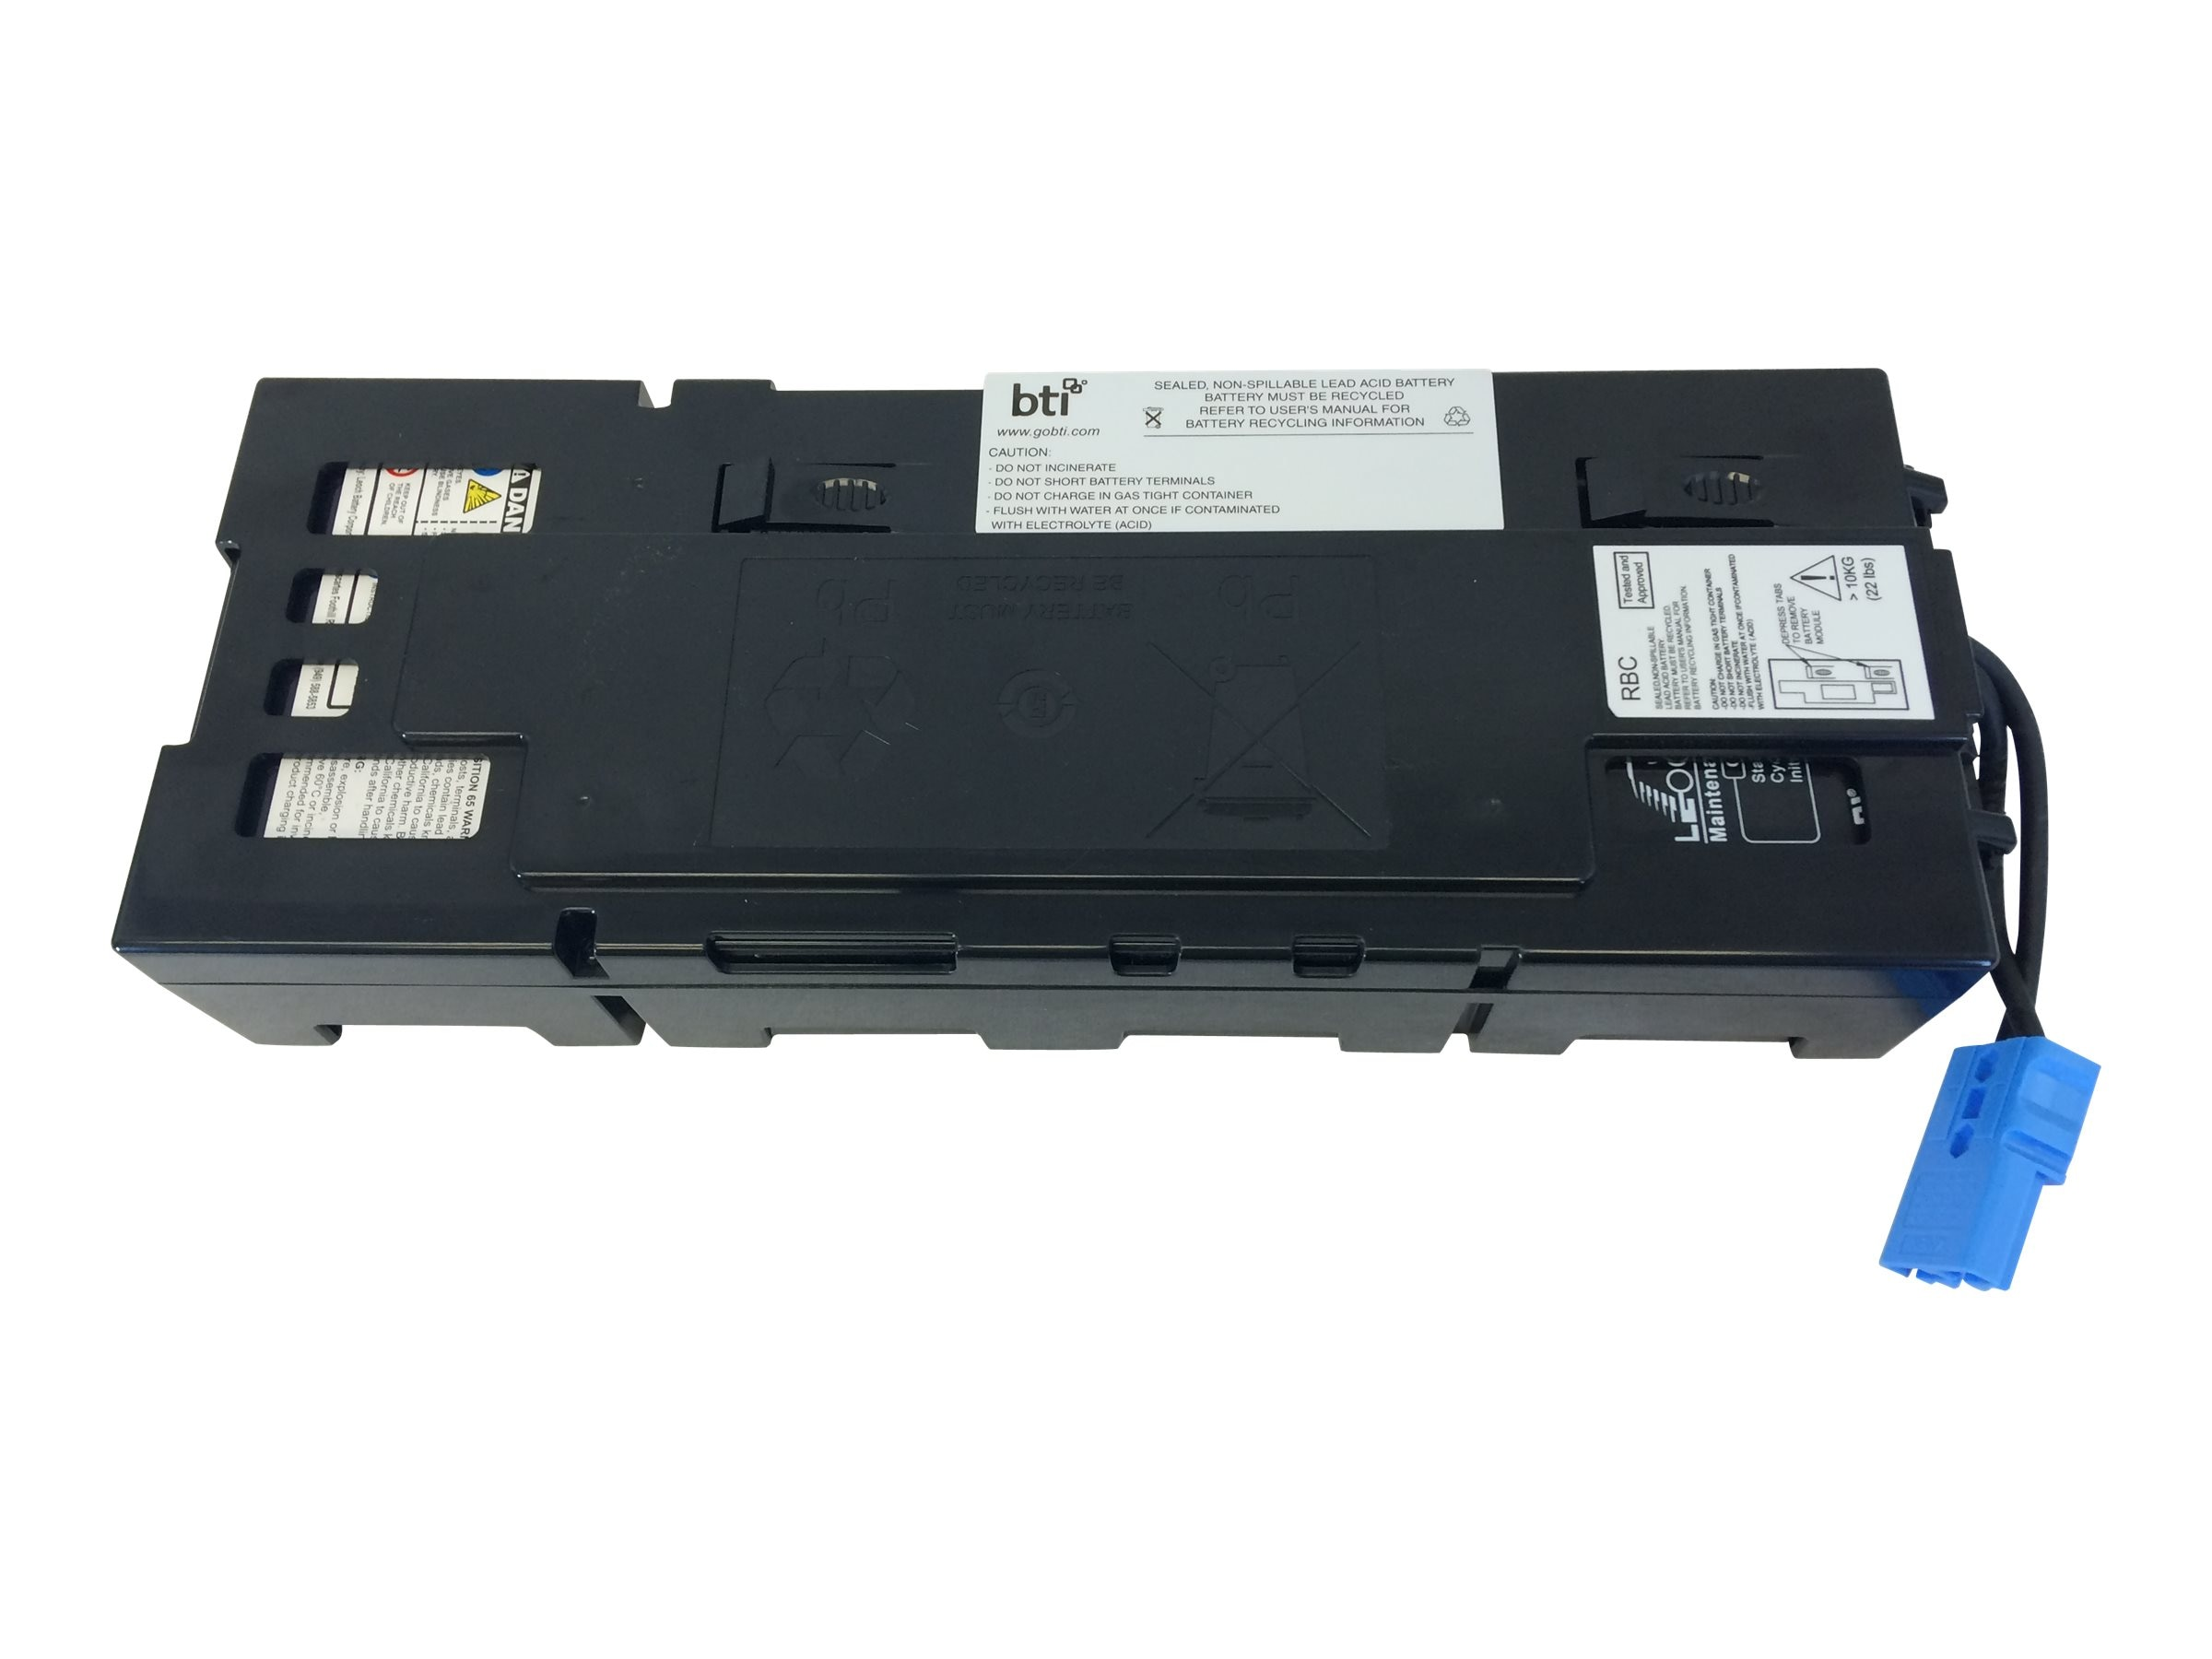 BTI RBC116 APC UPS Replacement Battery BATTSMX750 SMX1000 APCRBC116, APCRBC116-SLA116